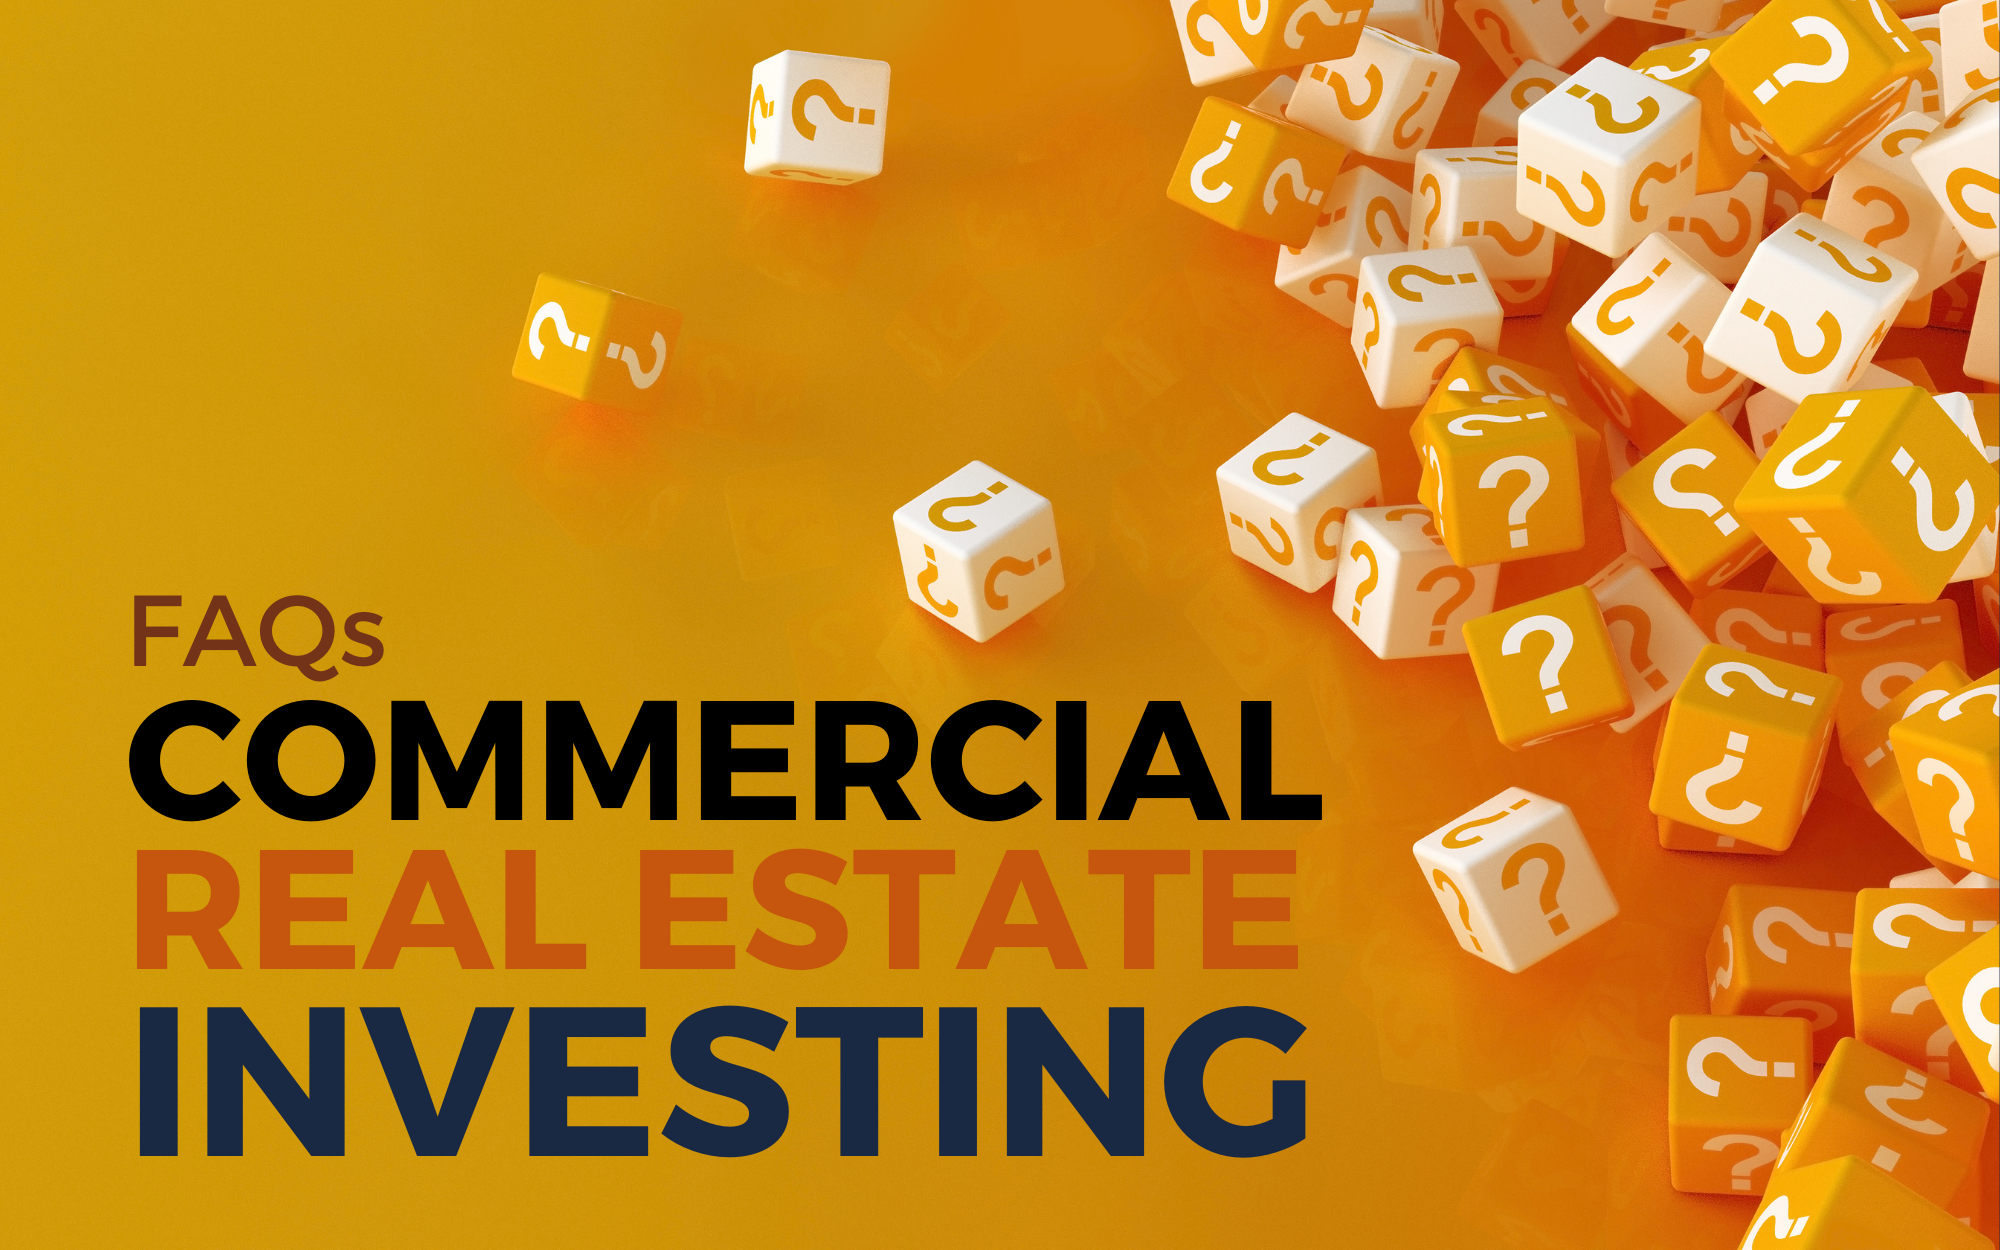 Commercial Real Estate Investment FAQs